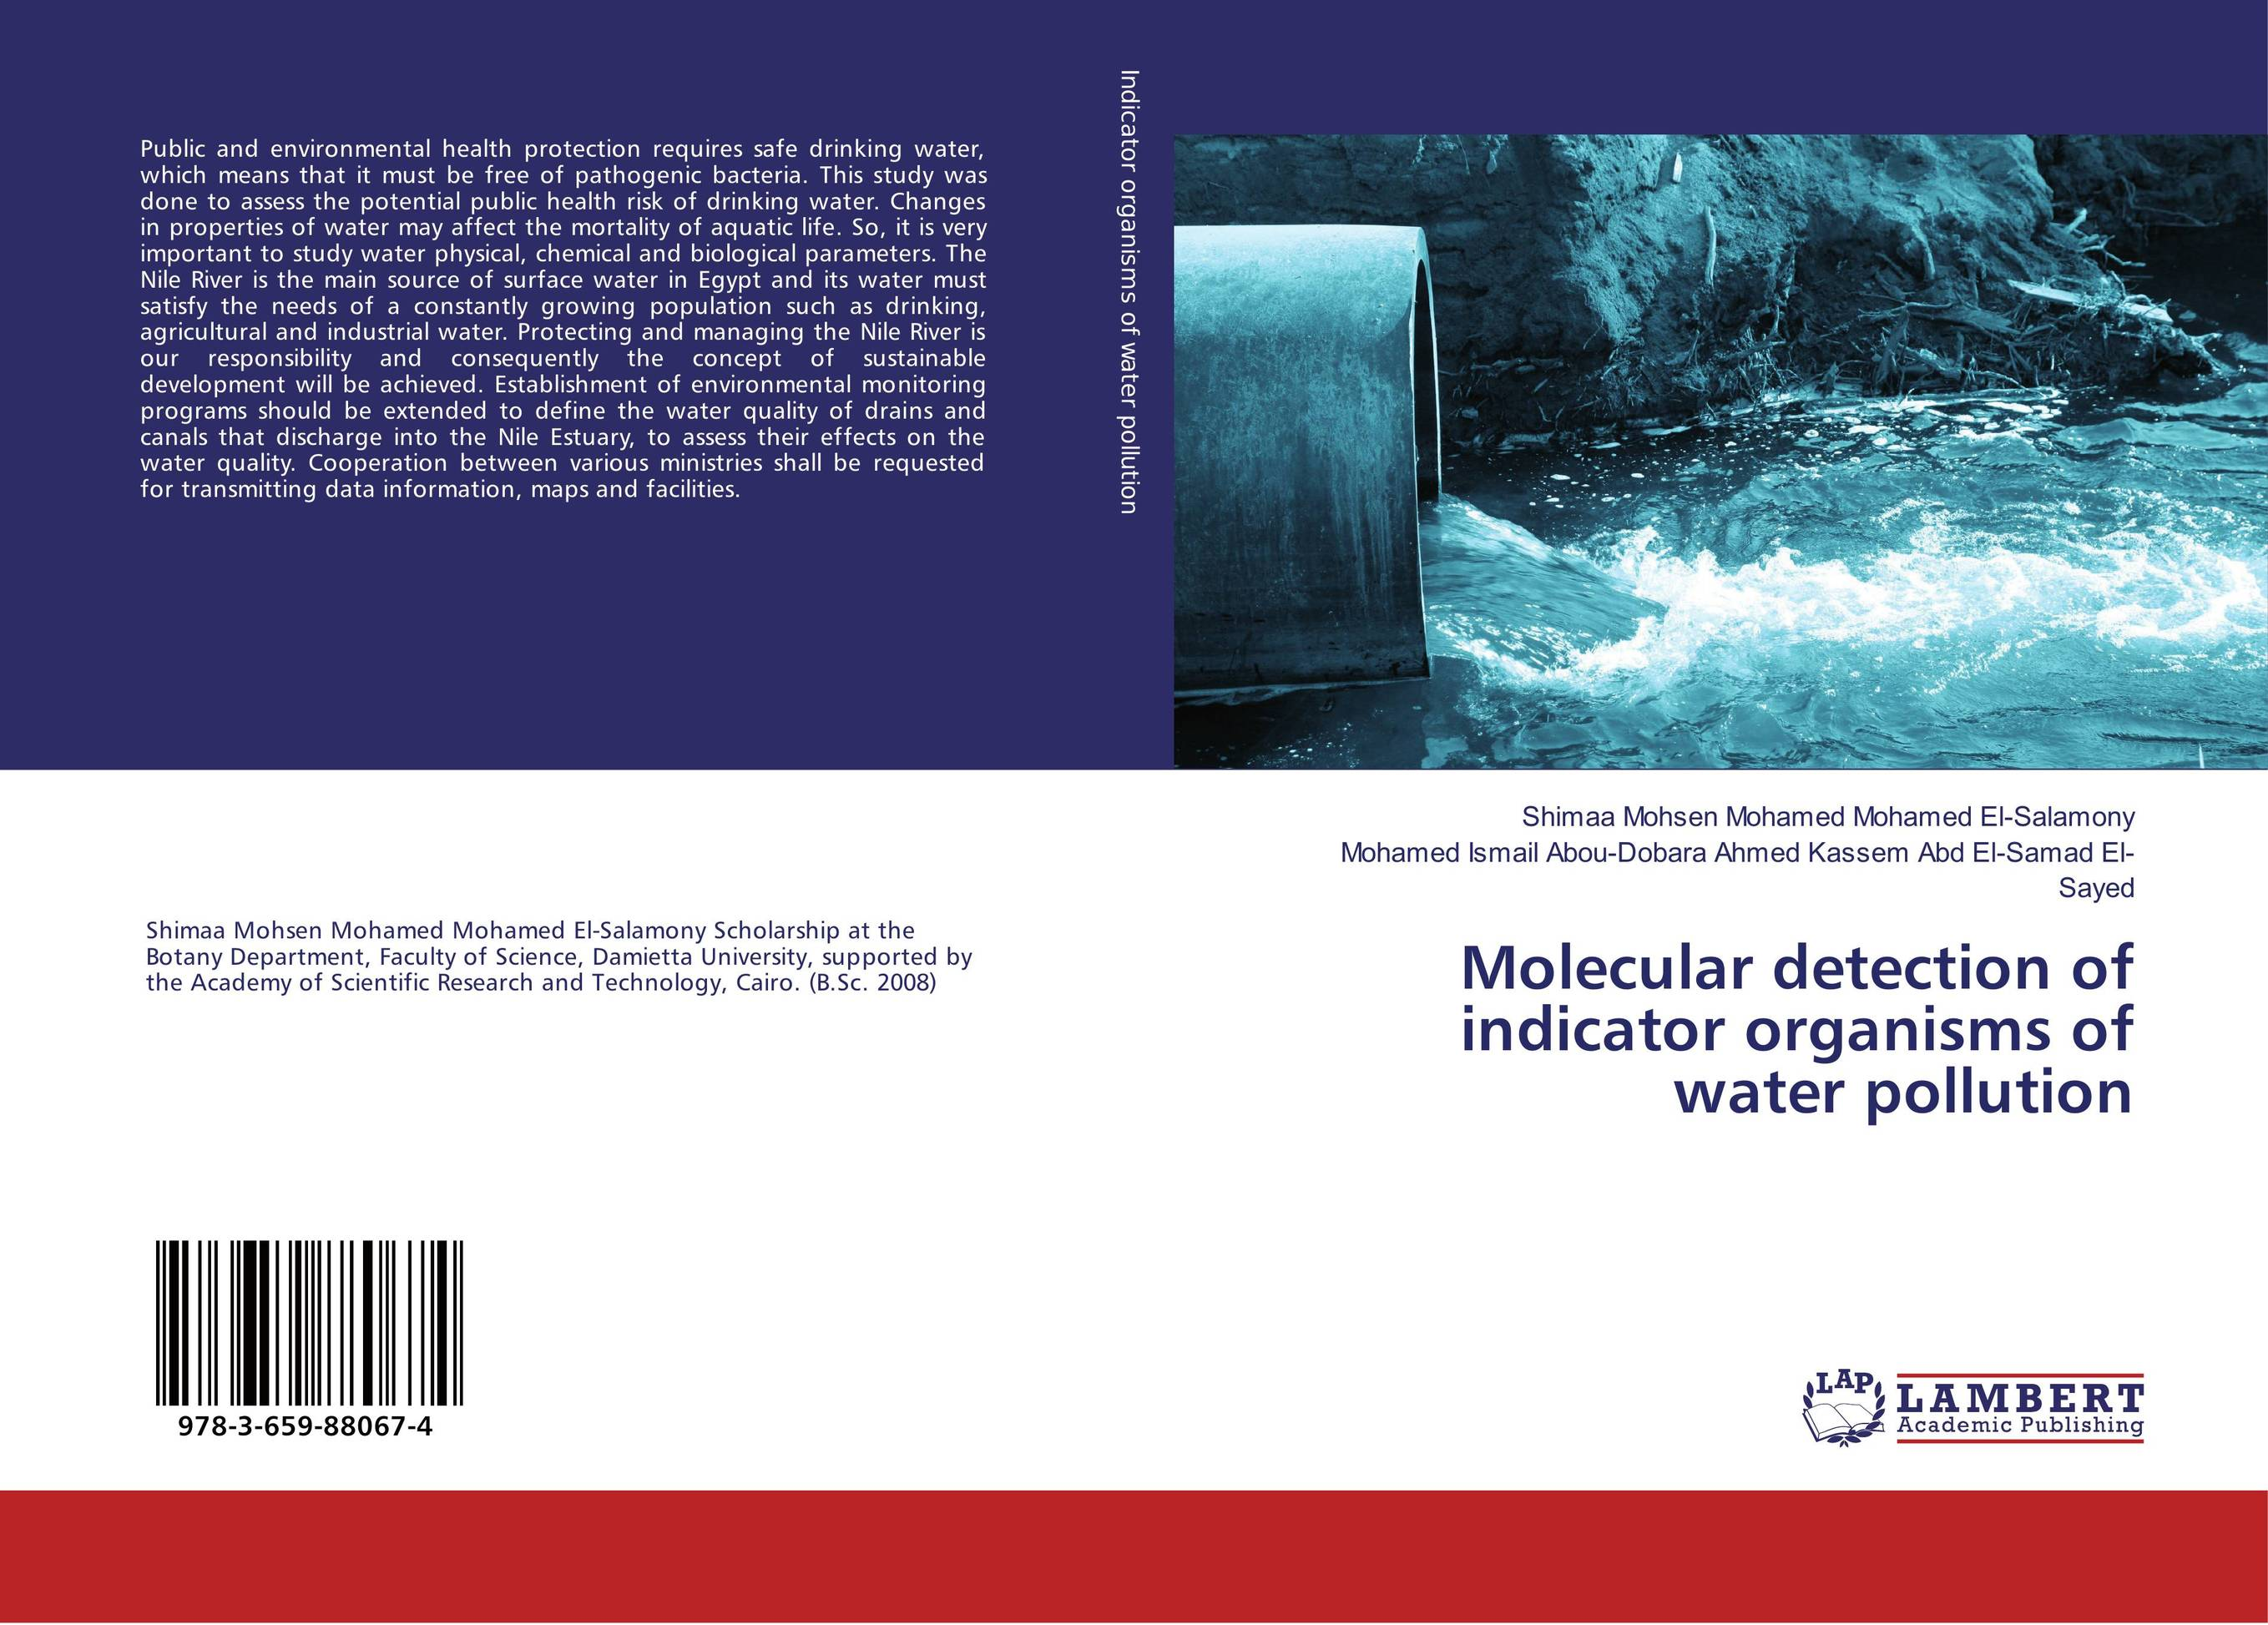 Molecular detection of indicator organisms of water pollution health risk evaluation of uniport drinking water framework nigeria